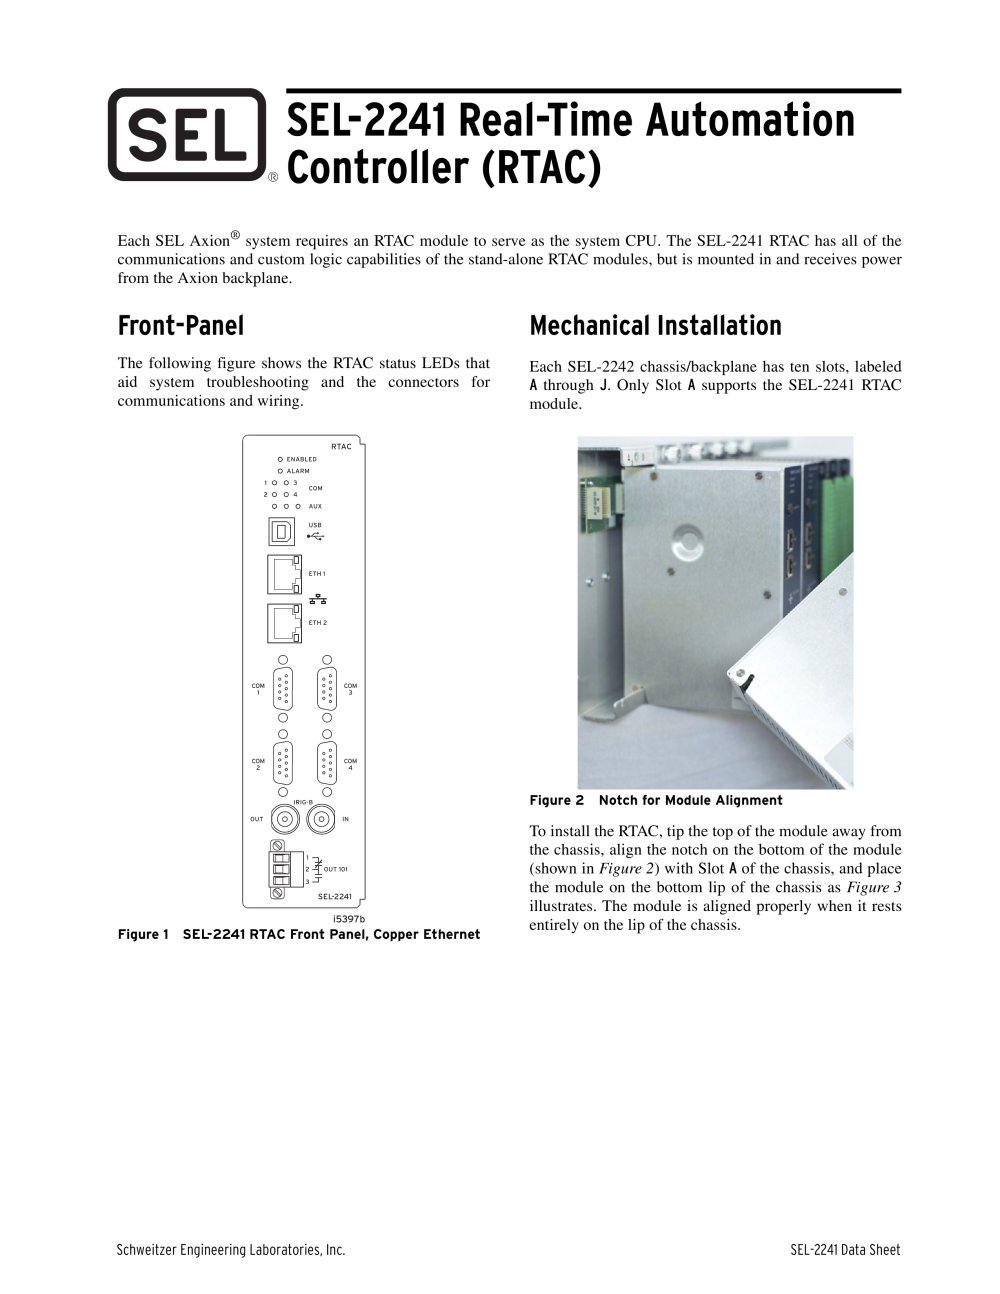 SEL-2241 Real-Time Automation Controller (RTAC) - 1 / 8 Pages